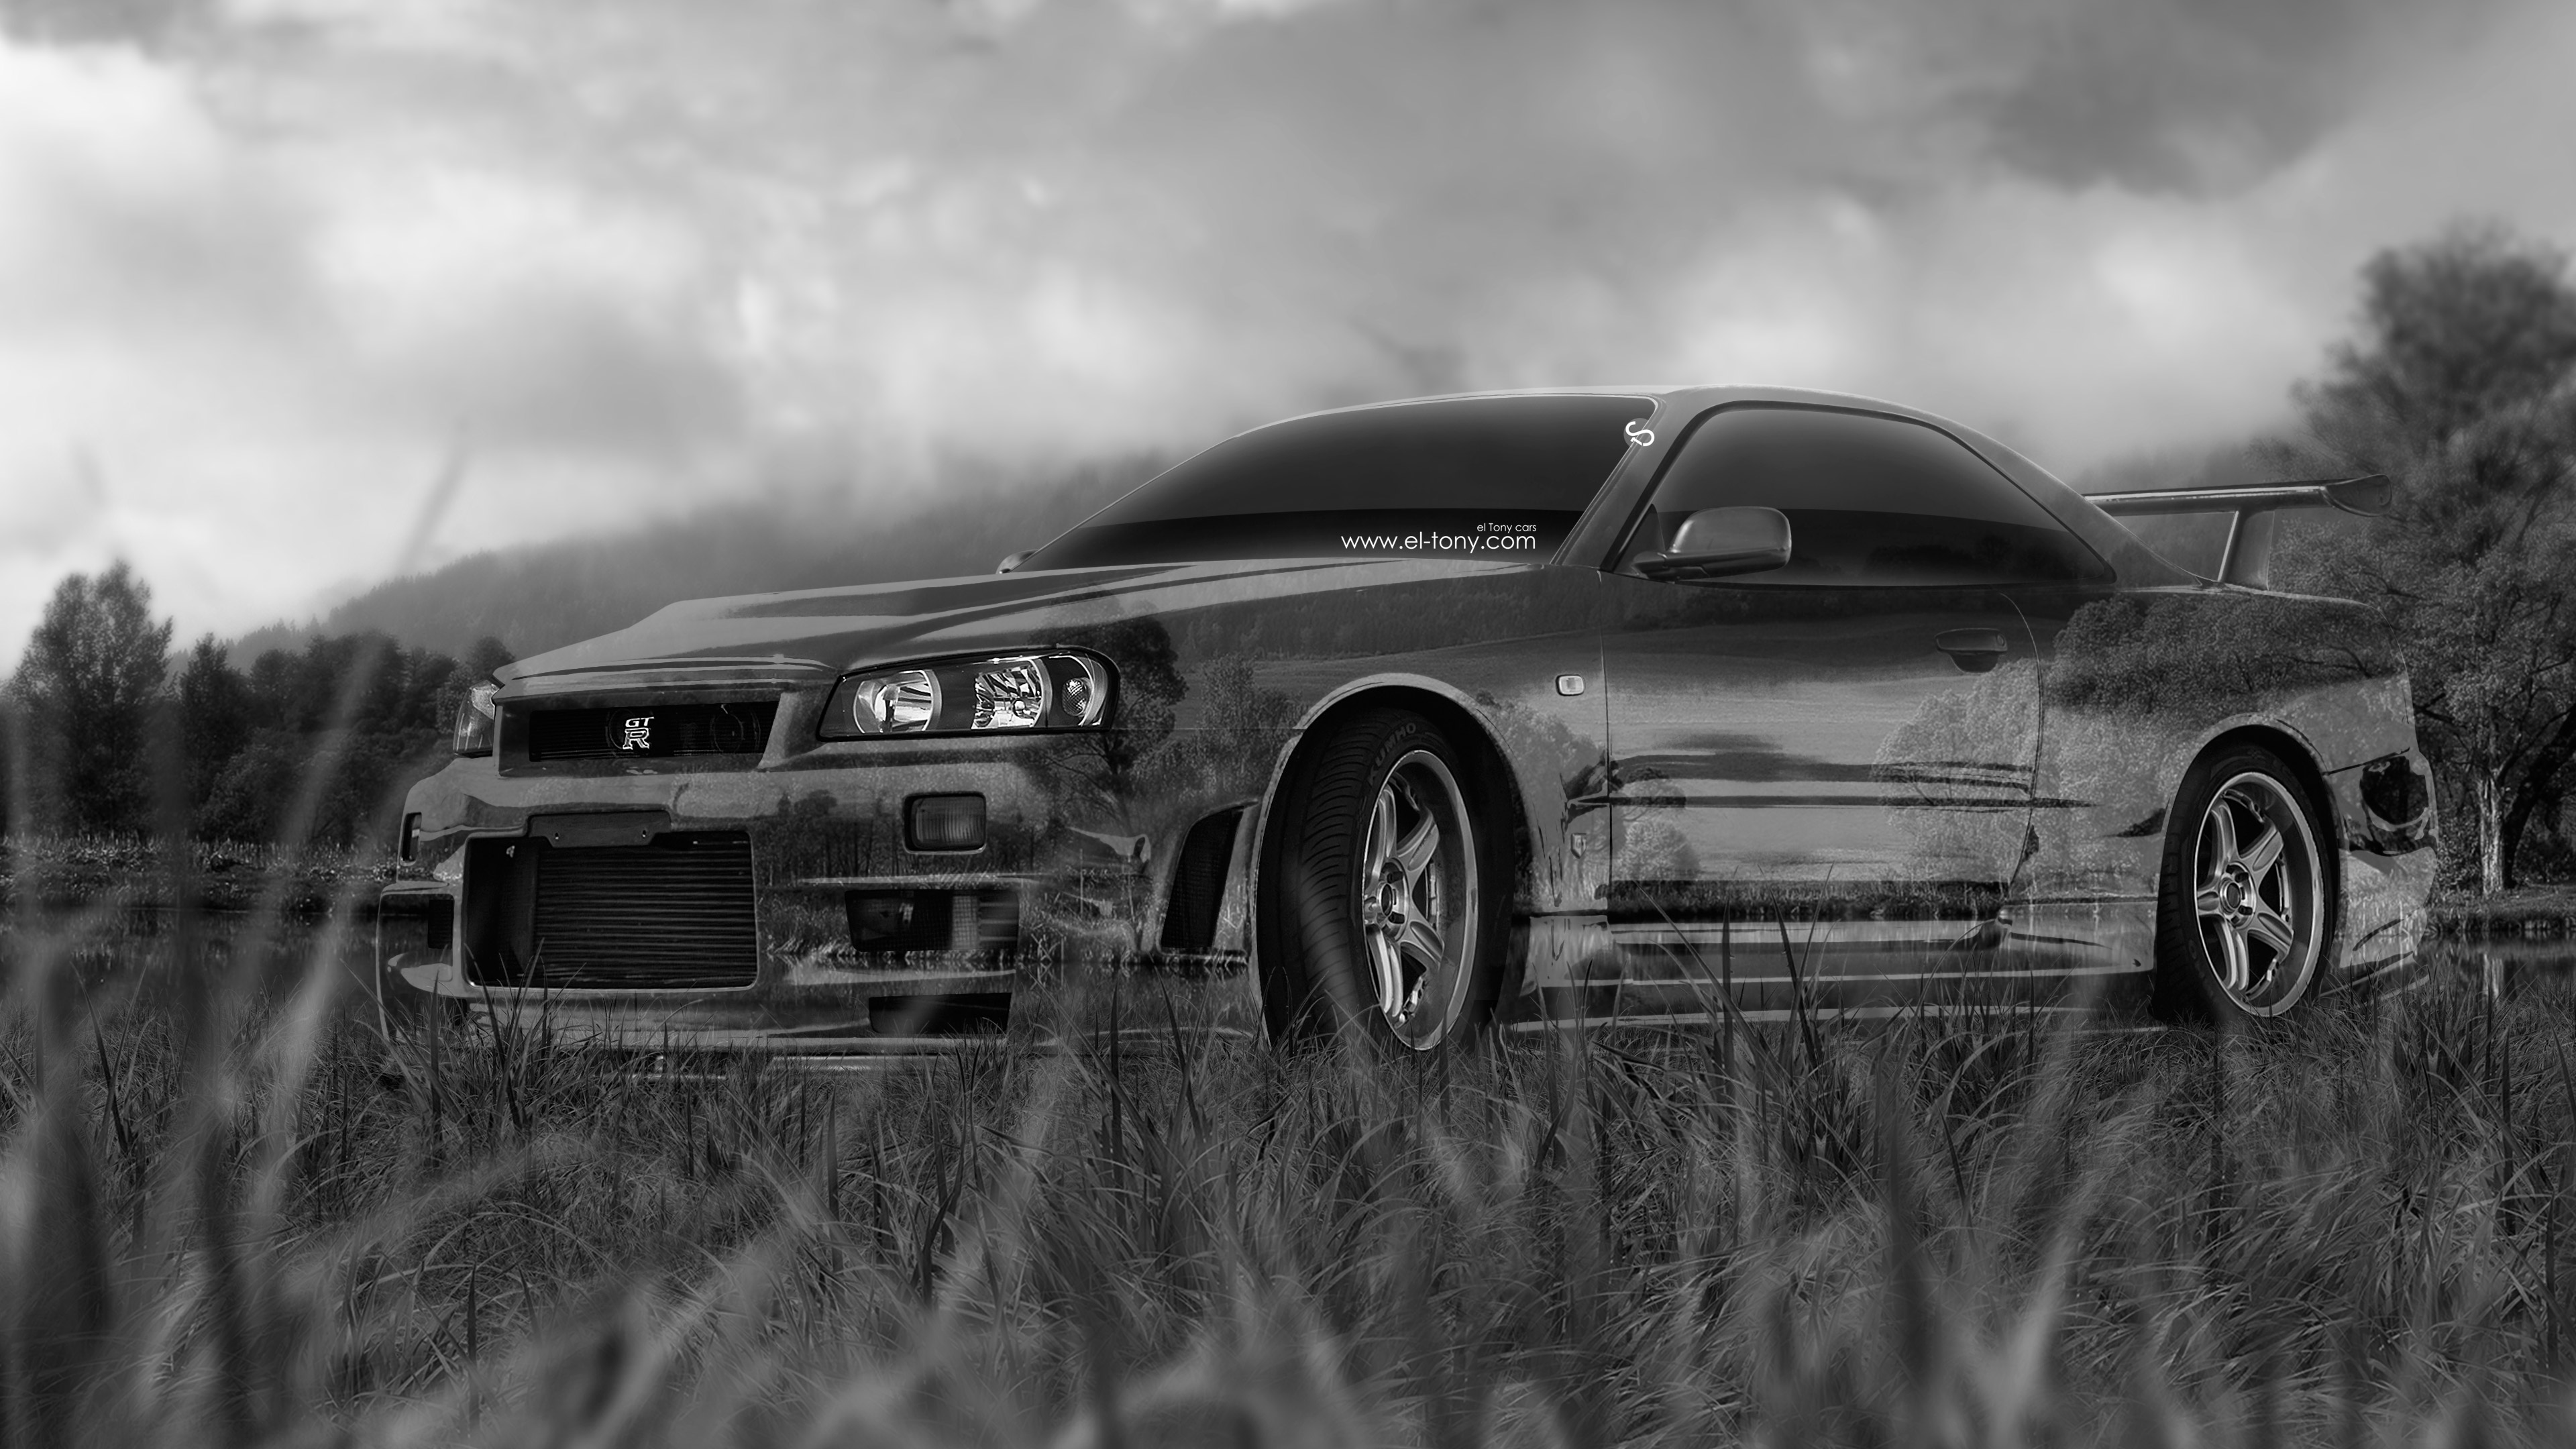 Nissan R34 Wallpaper 3840x2160 Download Hd Wallpaper Wallpapertip